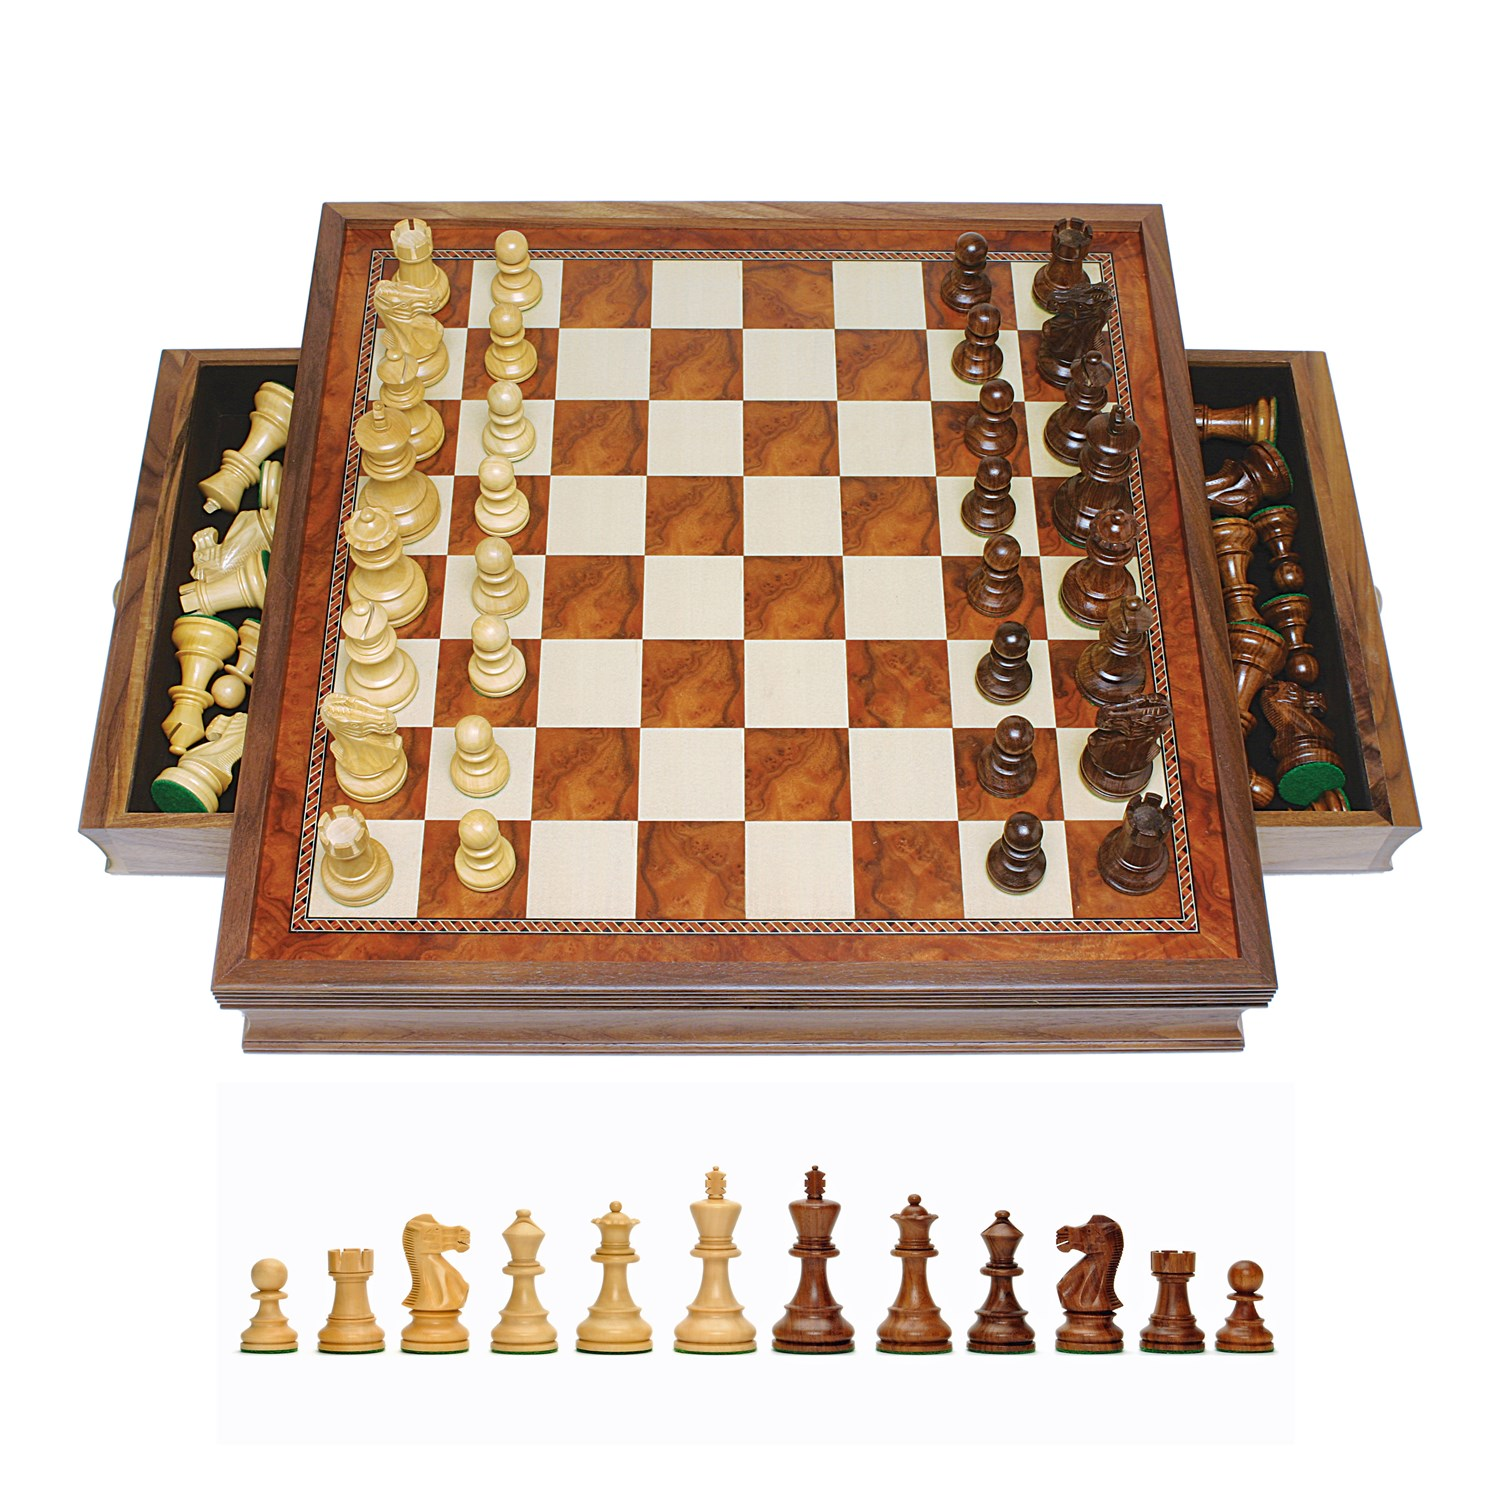 Grand English Style Chess Set With Storage Drawers